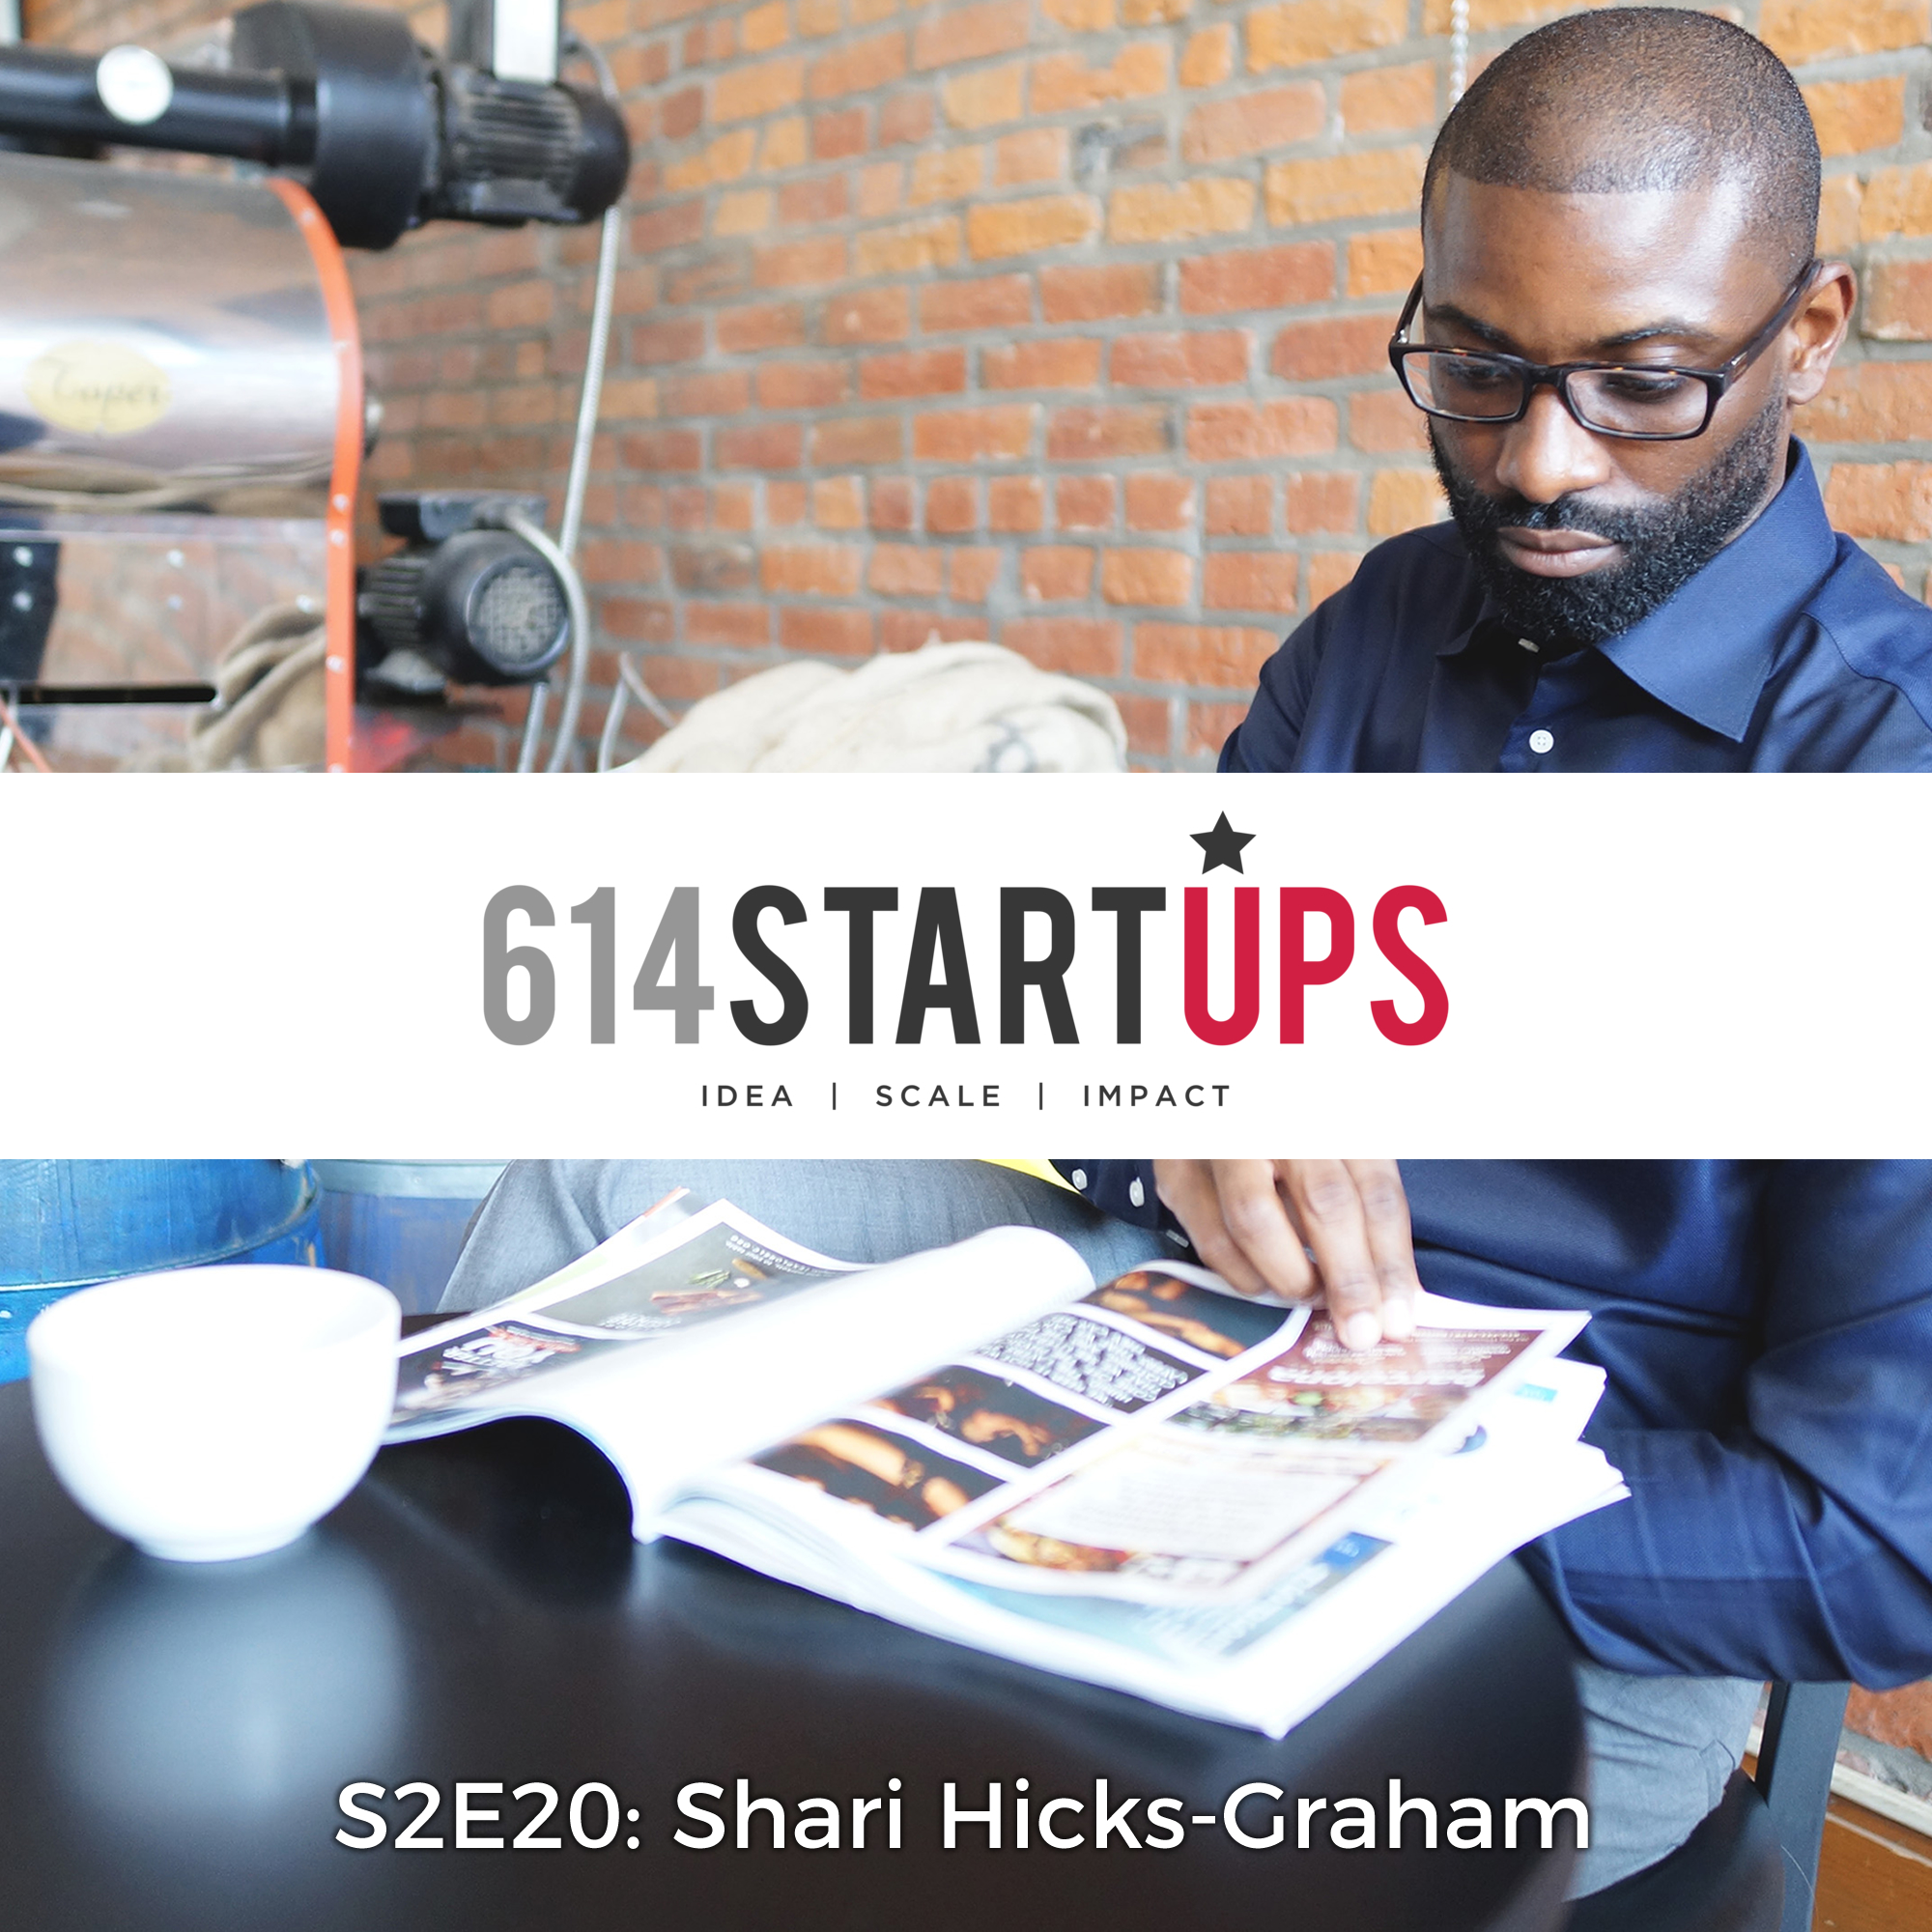 614SU - S2E20 - Shari Hicks-Graham.jpg